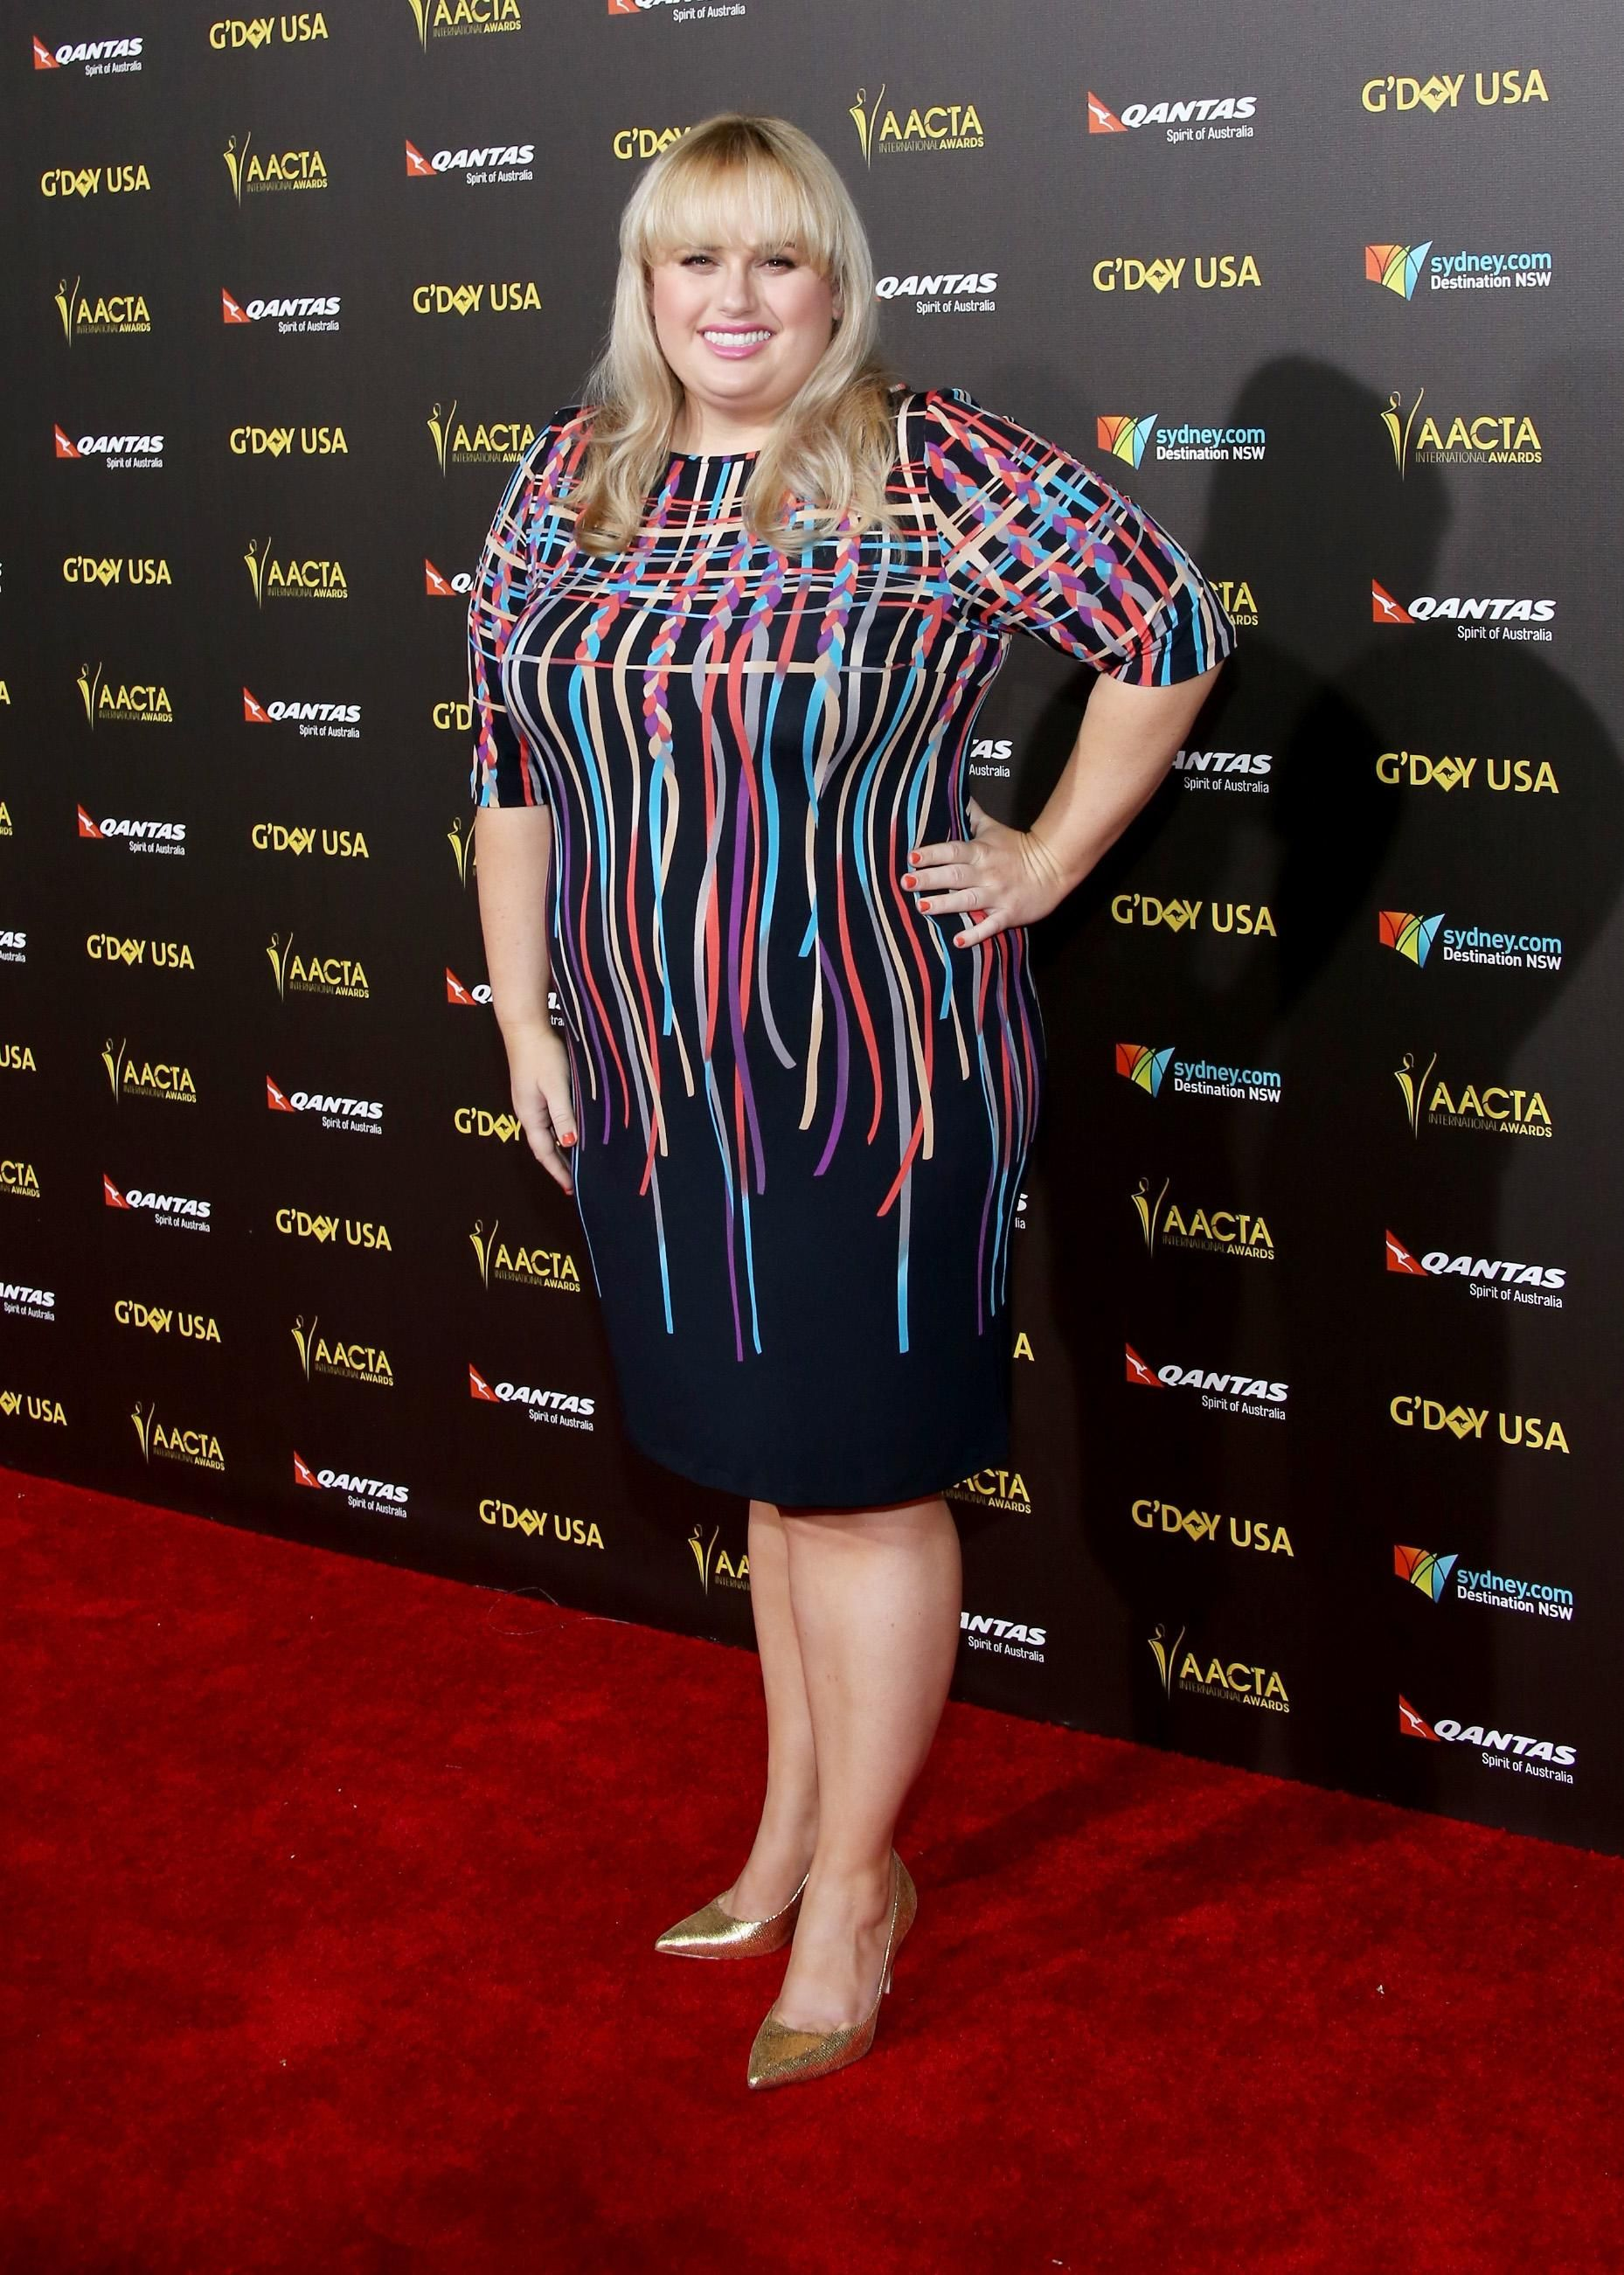 I'm obsessed with Rebel Wilson's dress.